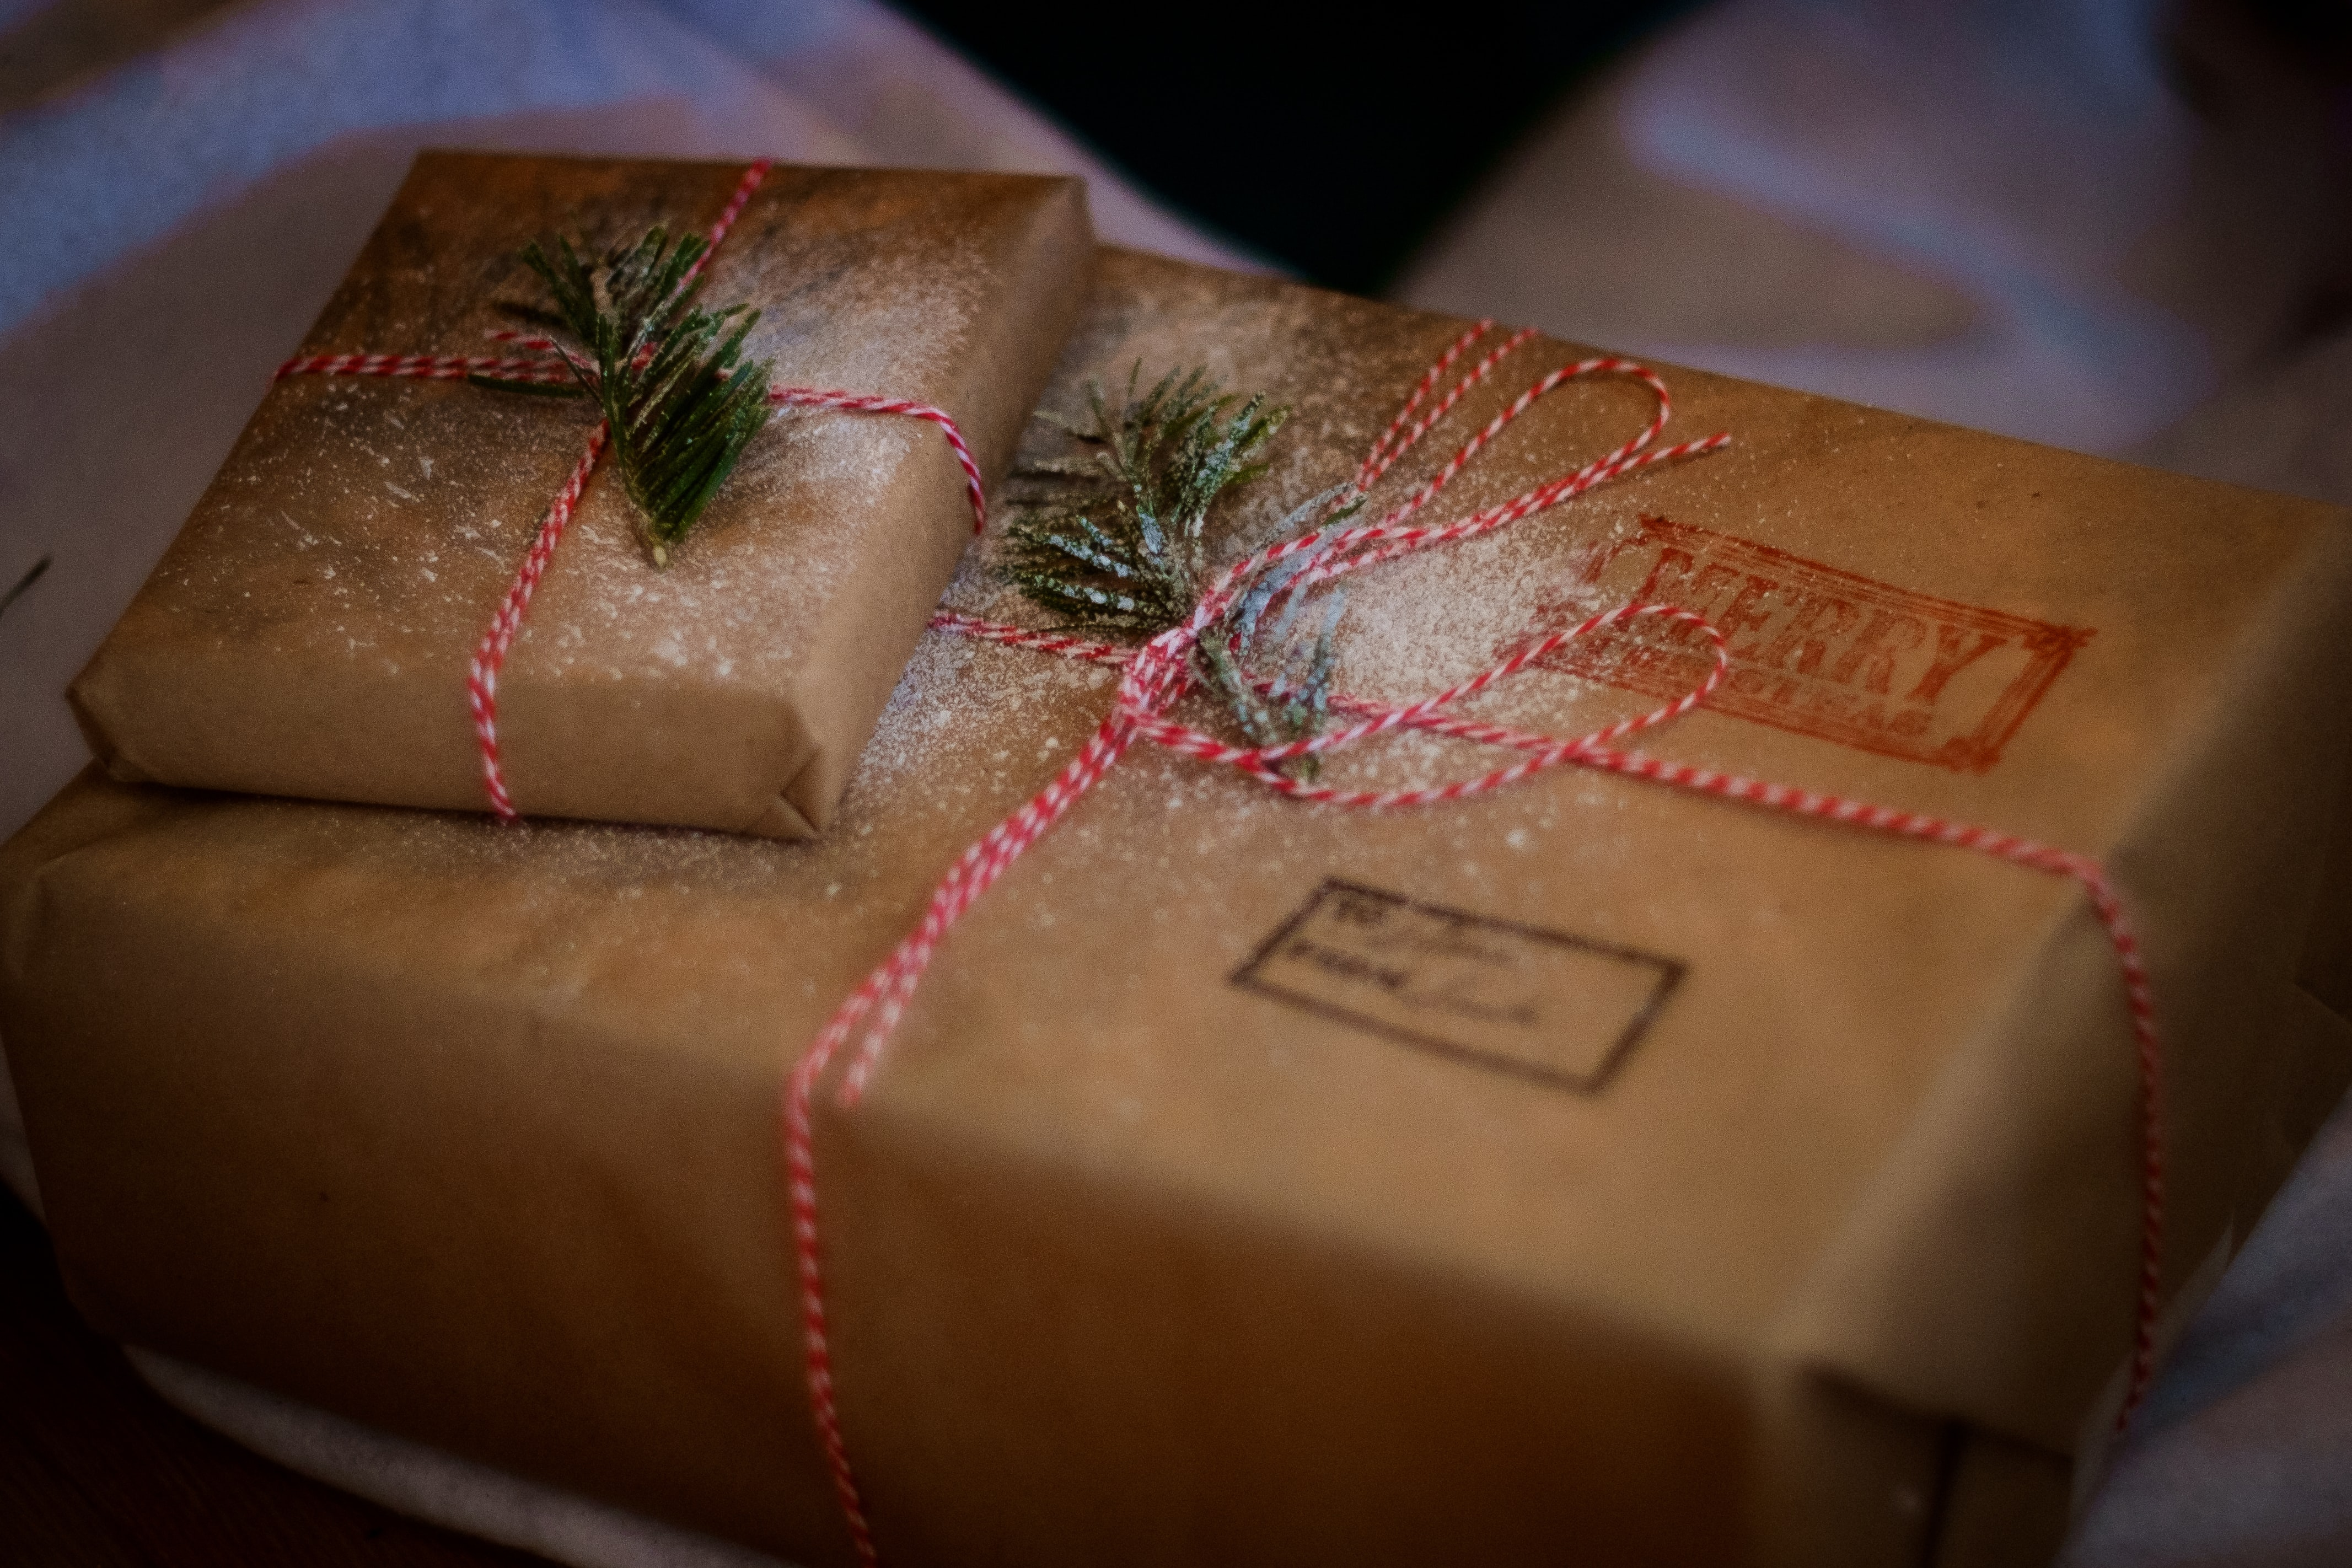 Christmas gift parcels wrapped in brown paper and decorated with twine and pine leaves.